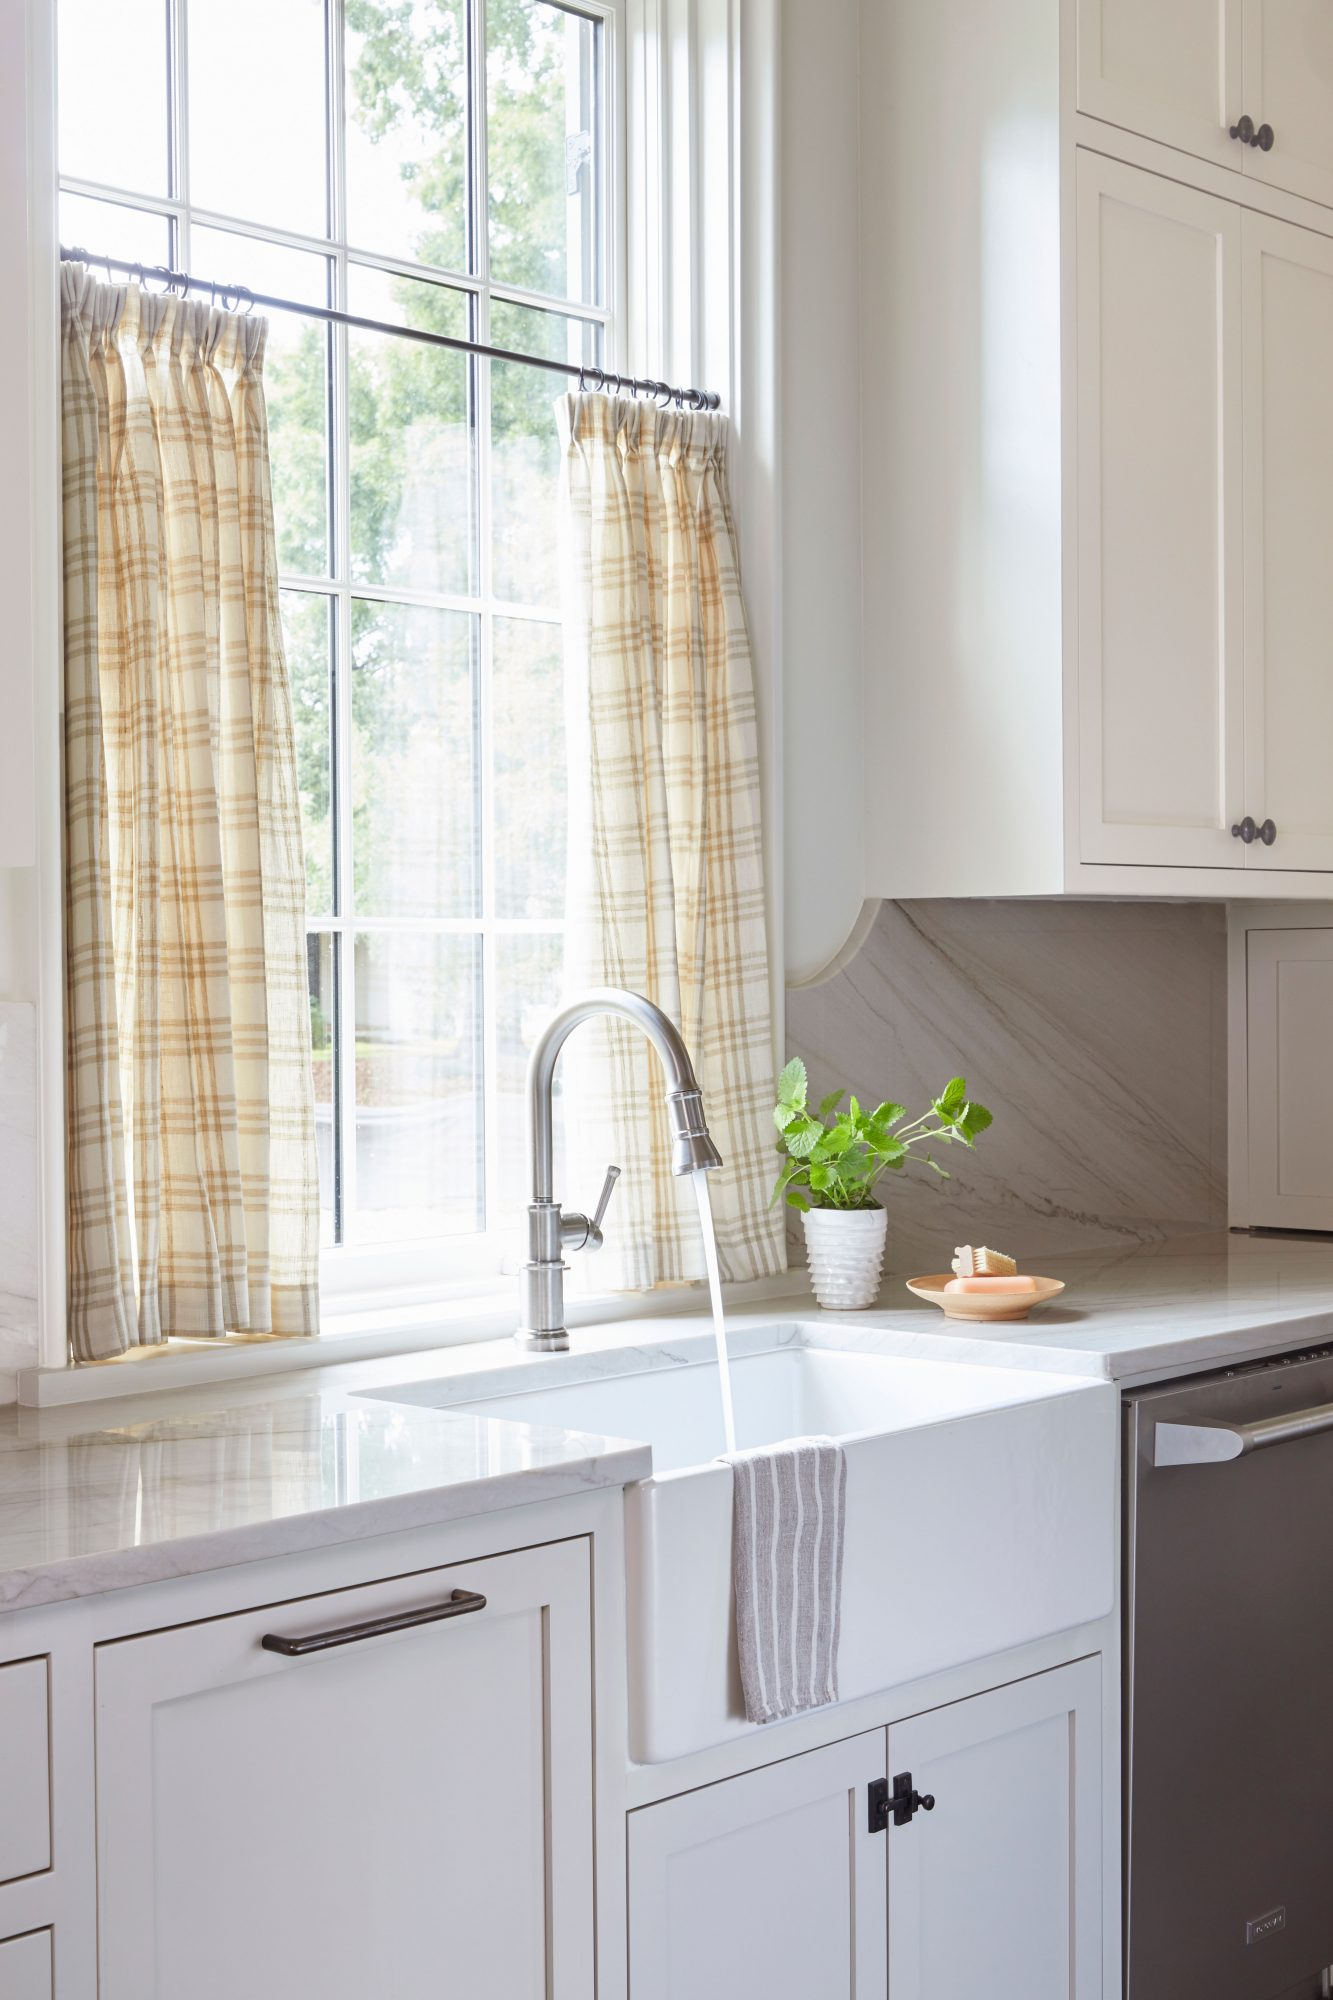 Kitchen Painted Cadet Gray by Pratt & Lambert with Cafe Curtain in Check